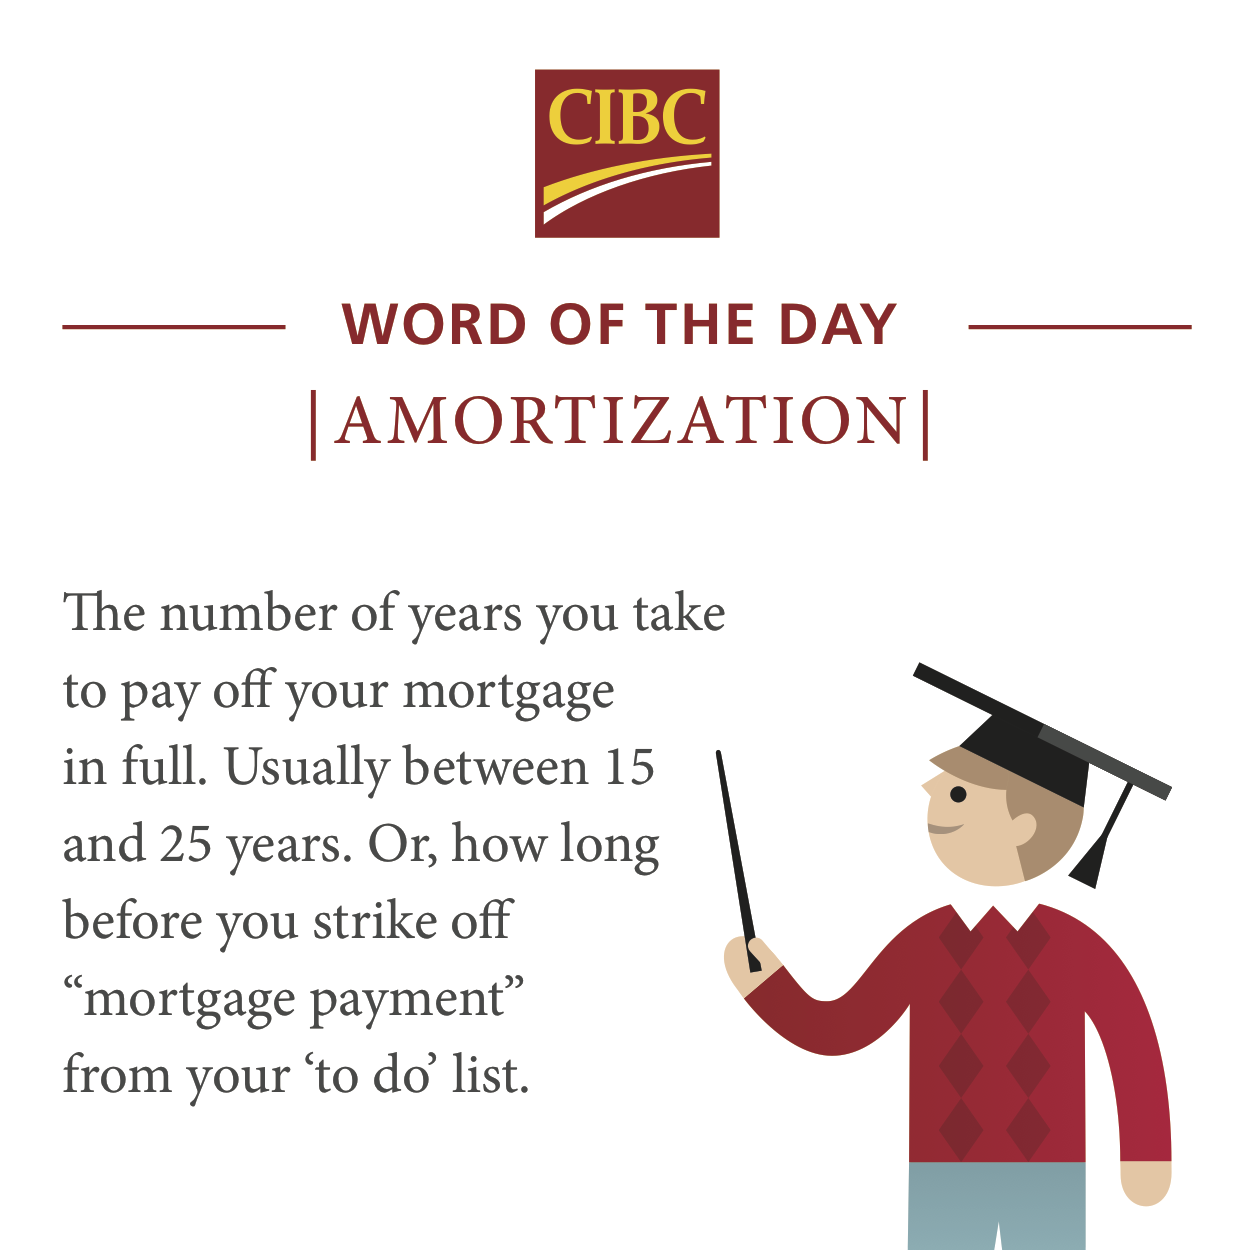 our definition of amortization (and why it matters). #mortgage #cibc